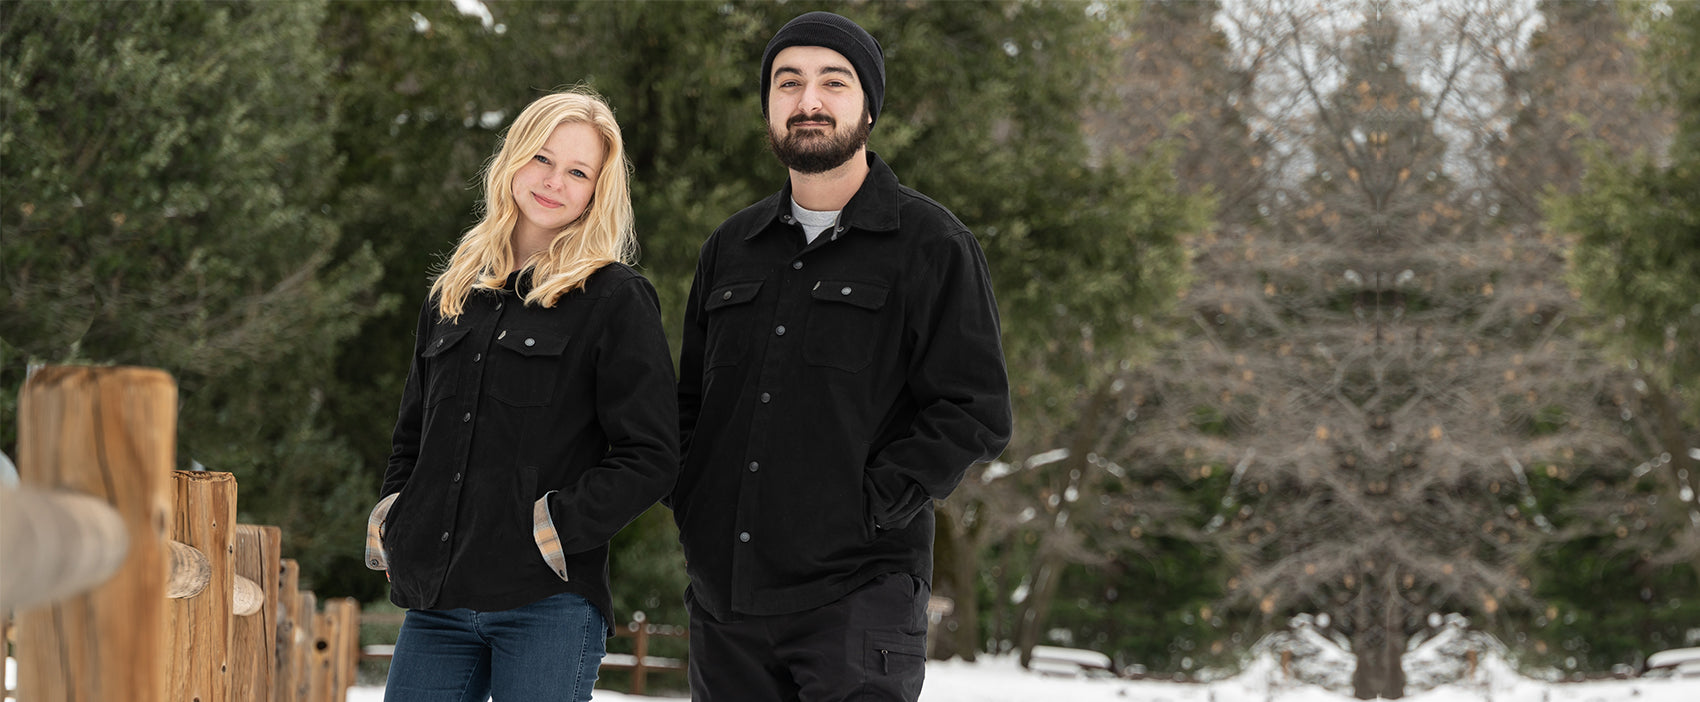 Frontier Heated Jackets